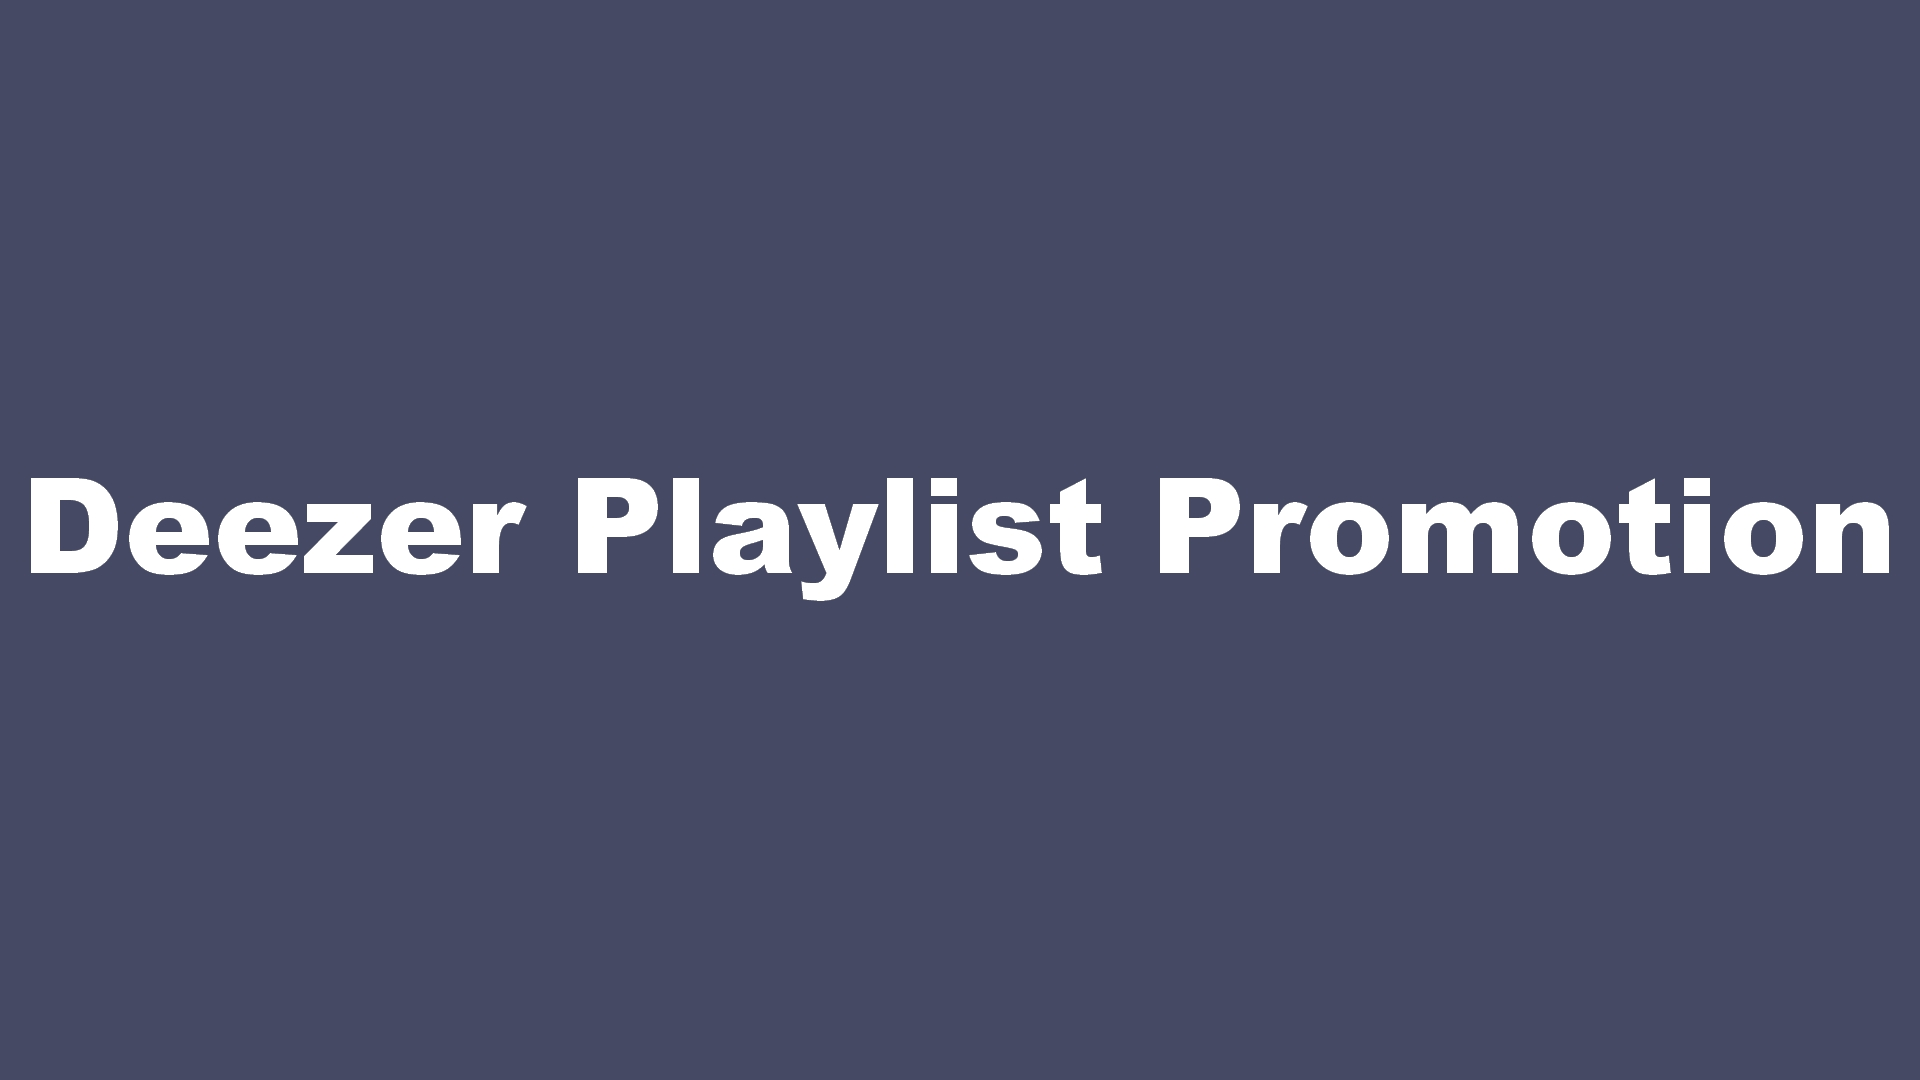 Your track on a Deezer Playlist playing 24/7 for one month